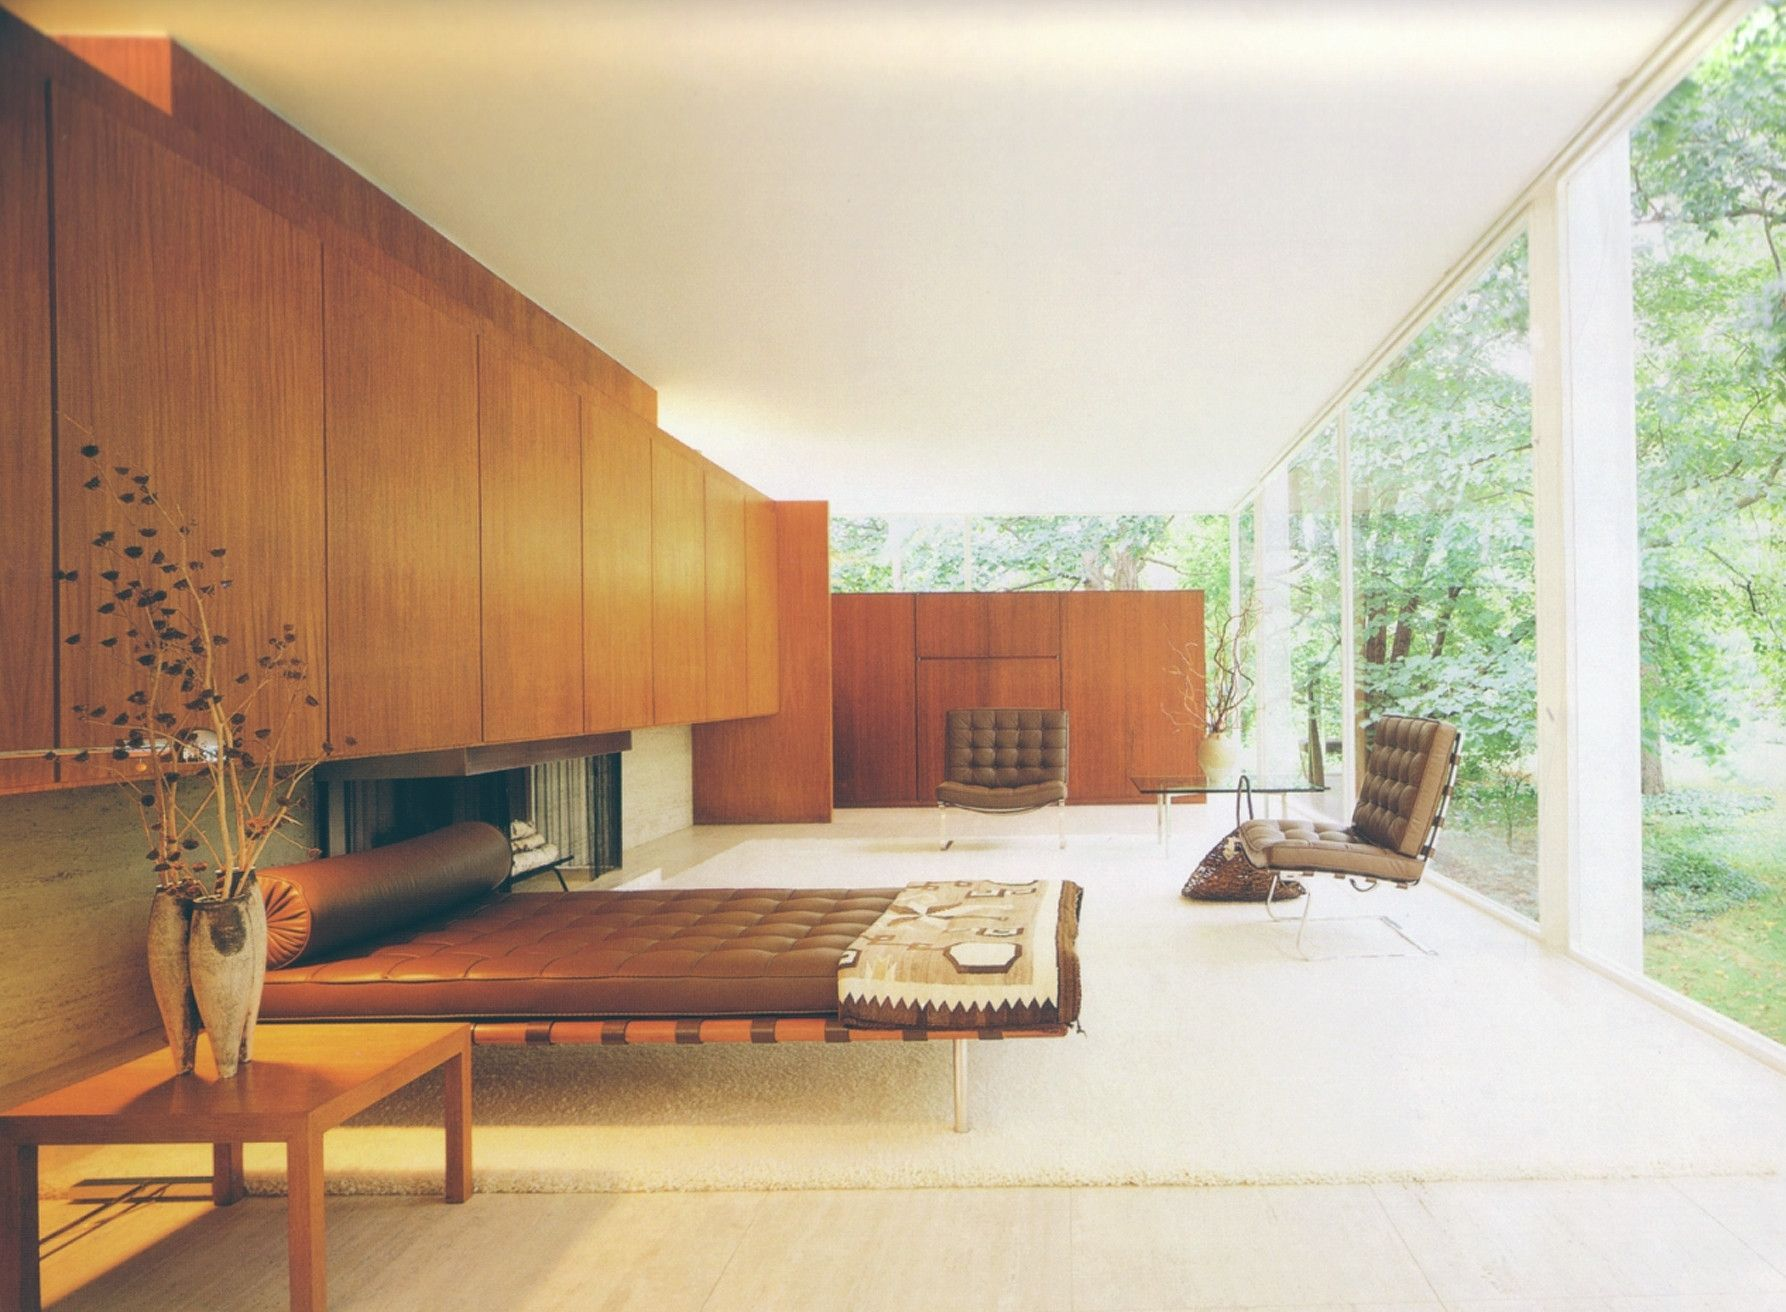 mies van der rohe house Google Search Mid century